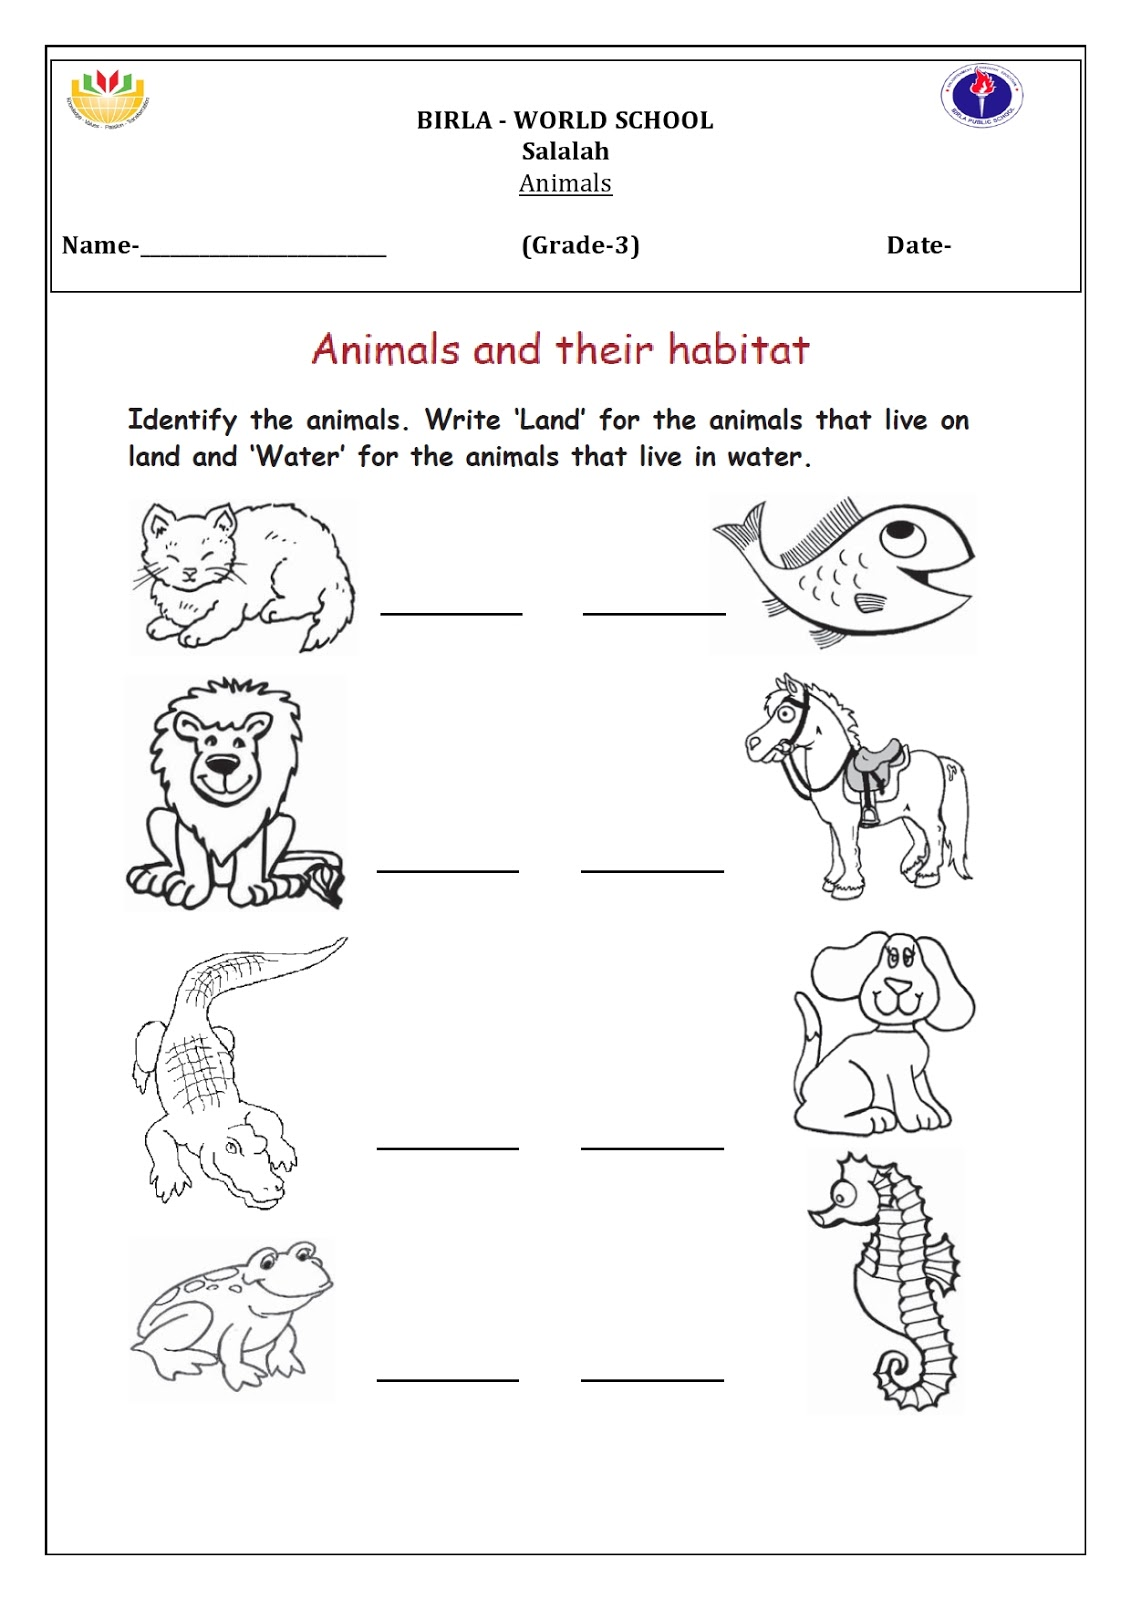 Worksheet Homework For Grade 3 birla world school oman homework for grade 3 b on 180816 180816